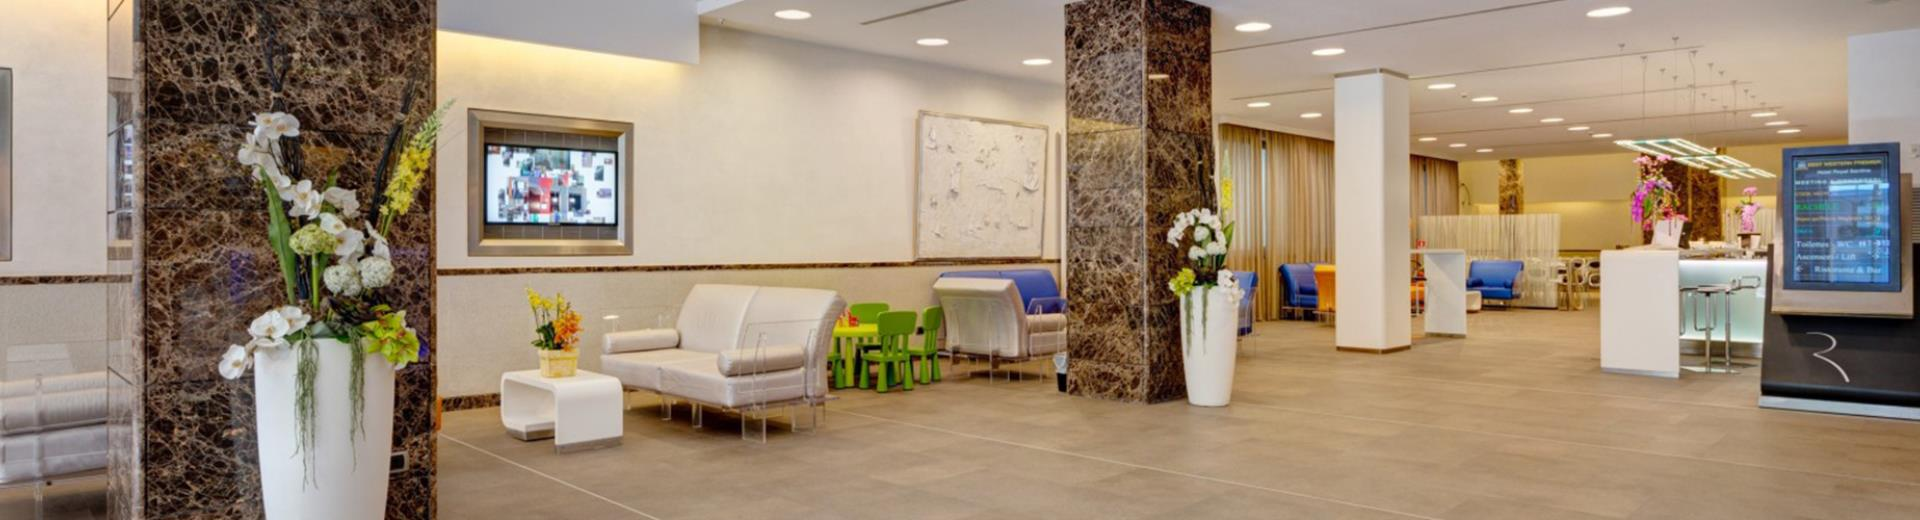 Looking for a hotel for your stay in Roma (RM)? Book/reserve at the Best Western Premier Hotel Royal Santina